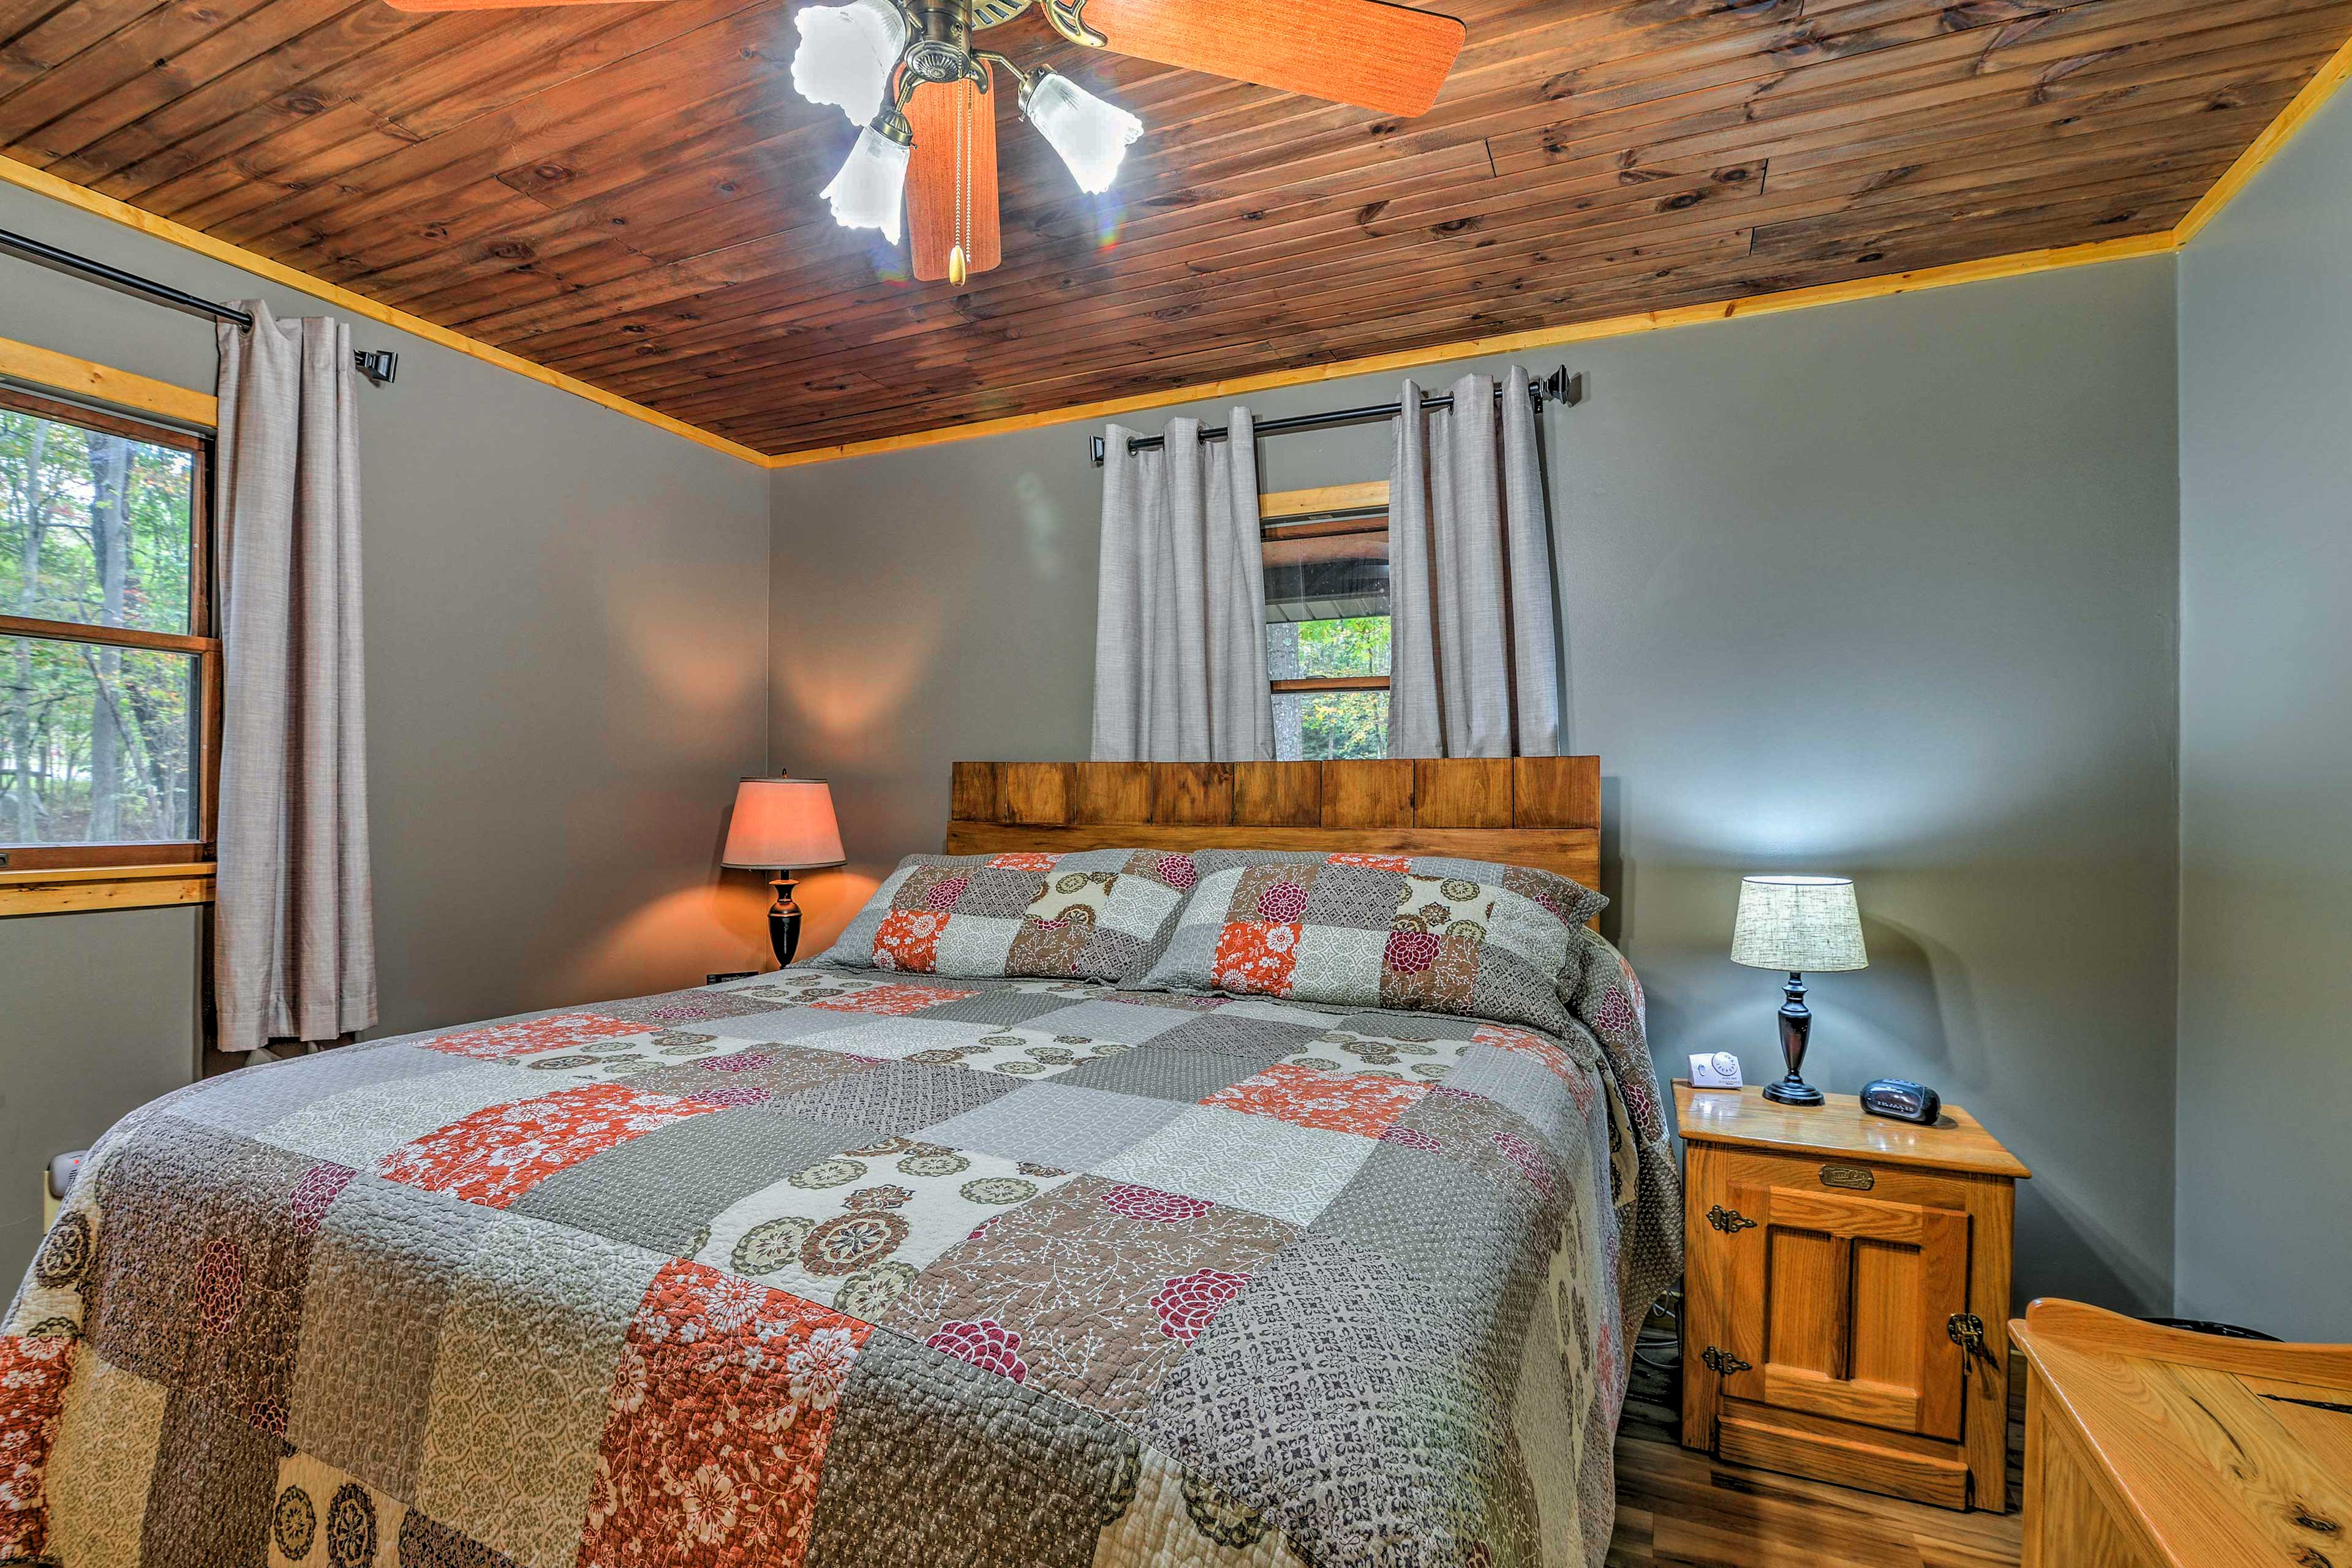 The first bedroom features a king bed.